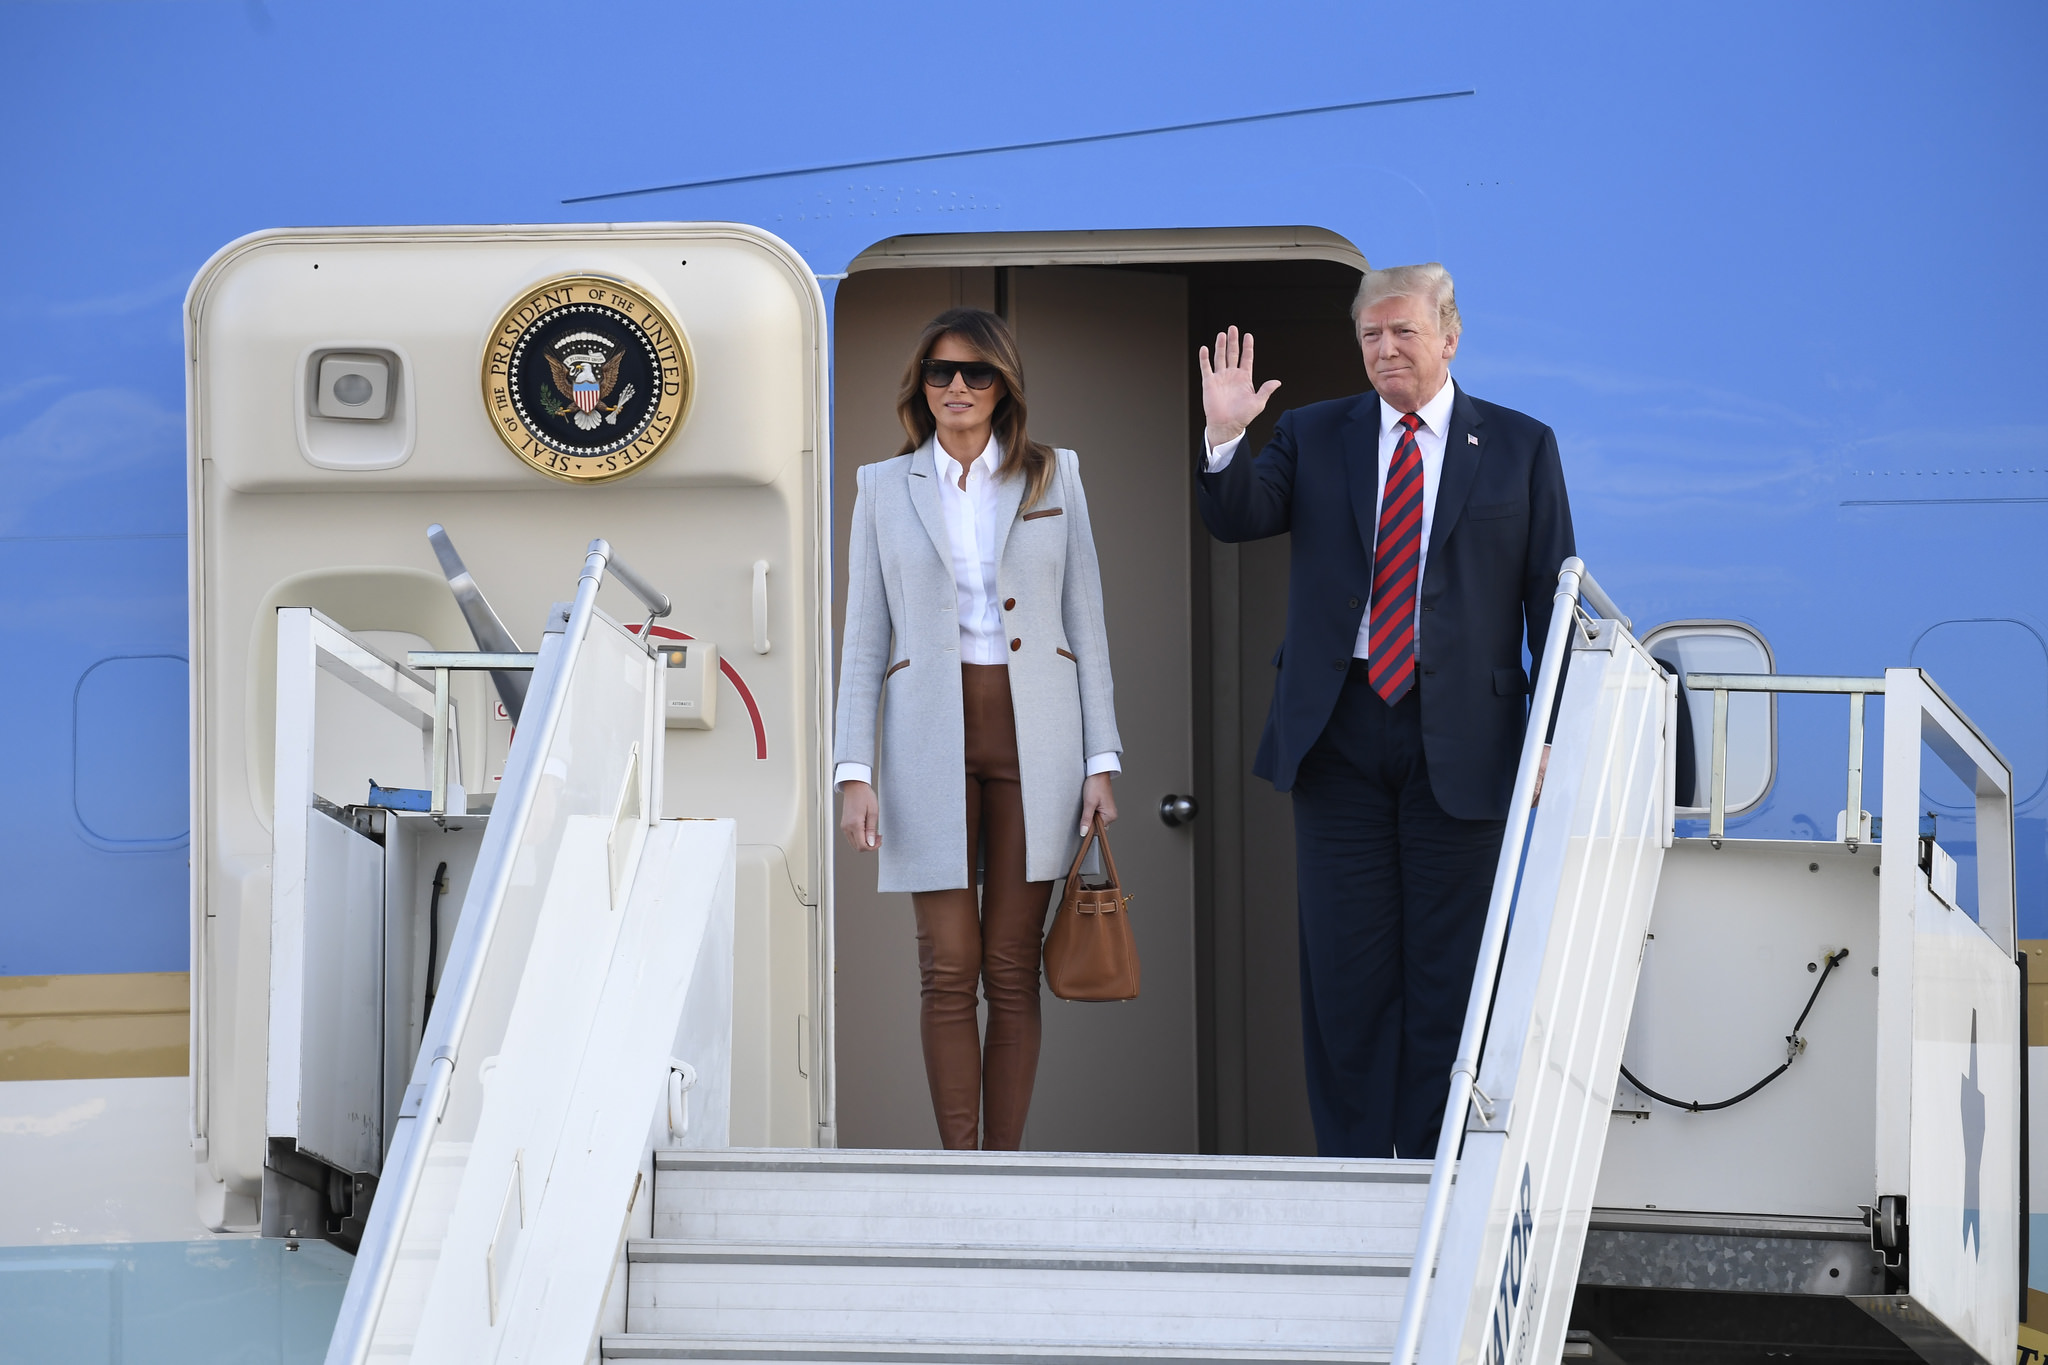 The US President Donald Trump and His Spouse Melania Arrive at the Helsinki Airport – View the Pictures